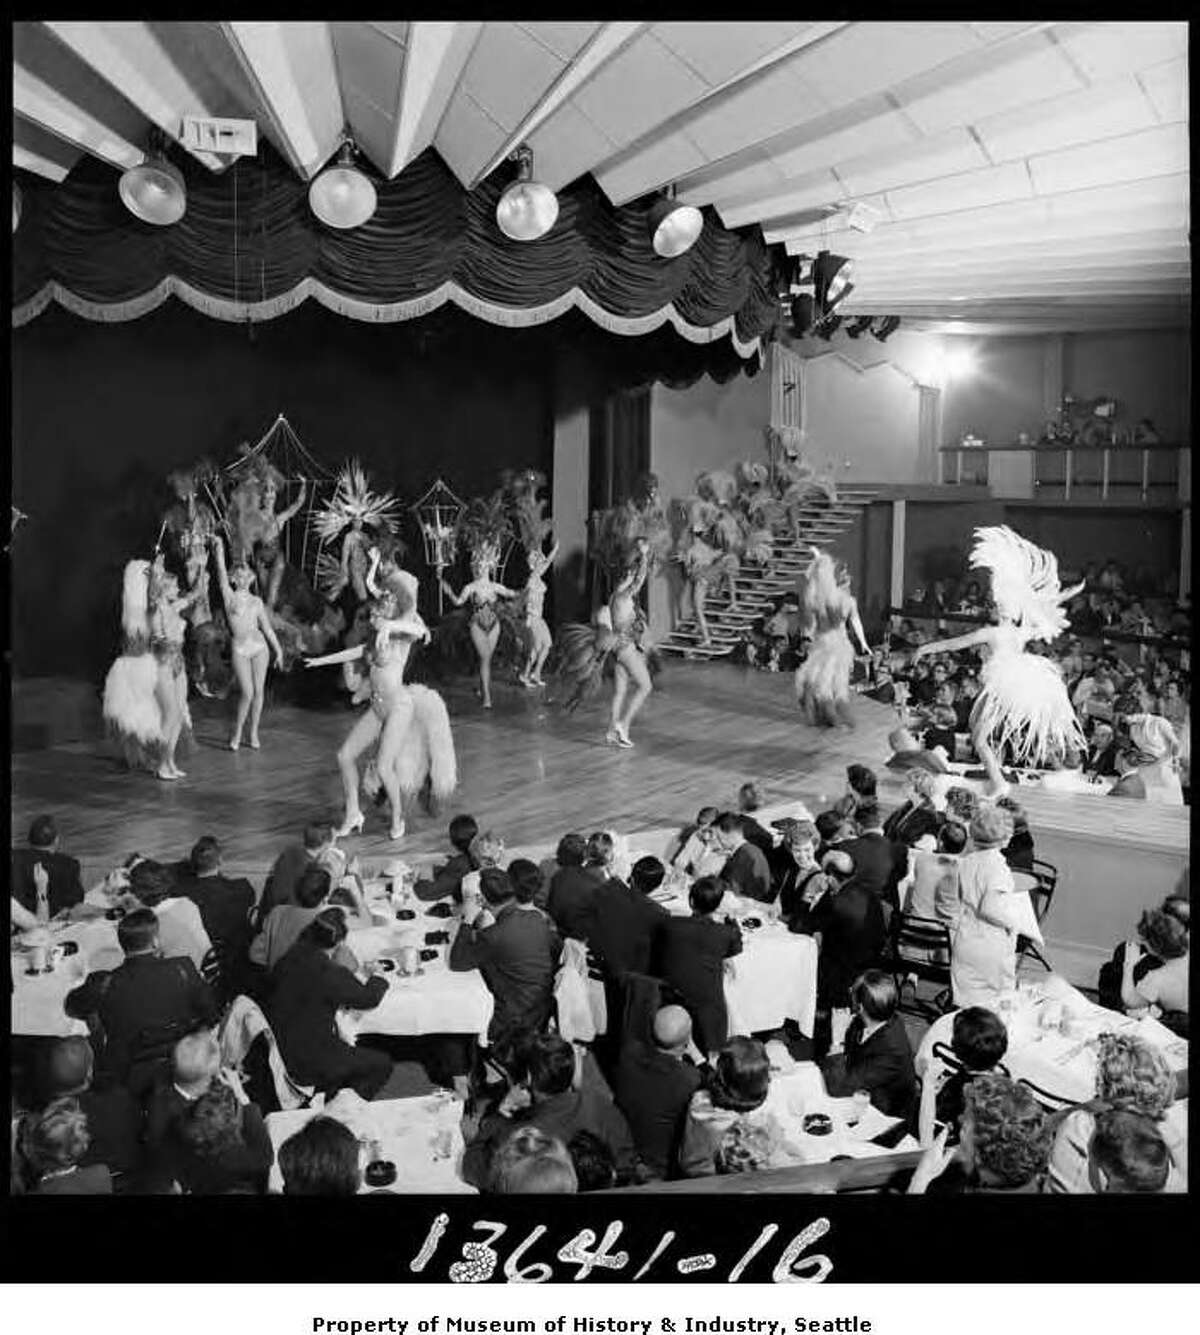 """""""A Night in Paradise"""" was a Las Vegas-style burlesque show performed in Gracie Hansen's Paradise International Theater on Show Street, the adult entertainment area of the 1962 Seattle World's Fair. The plush 700-seat theater offered four shows a night, described as """"extravagant production numbers featuring the world's most beautiful girls, interspersed with internationally renowned specialty performers."""" In this photograph, dancers in flashy costumes perform on stage while the audience, seated at tables, looks on."""